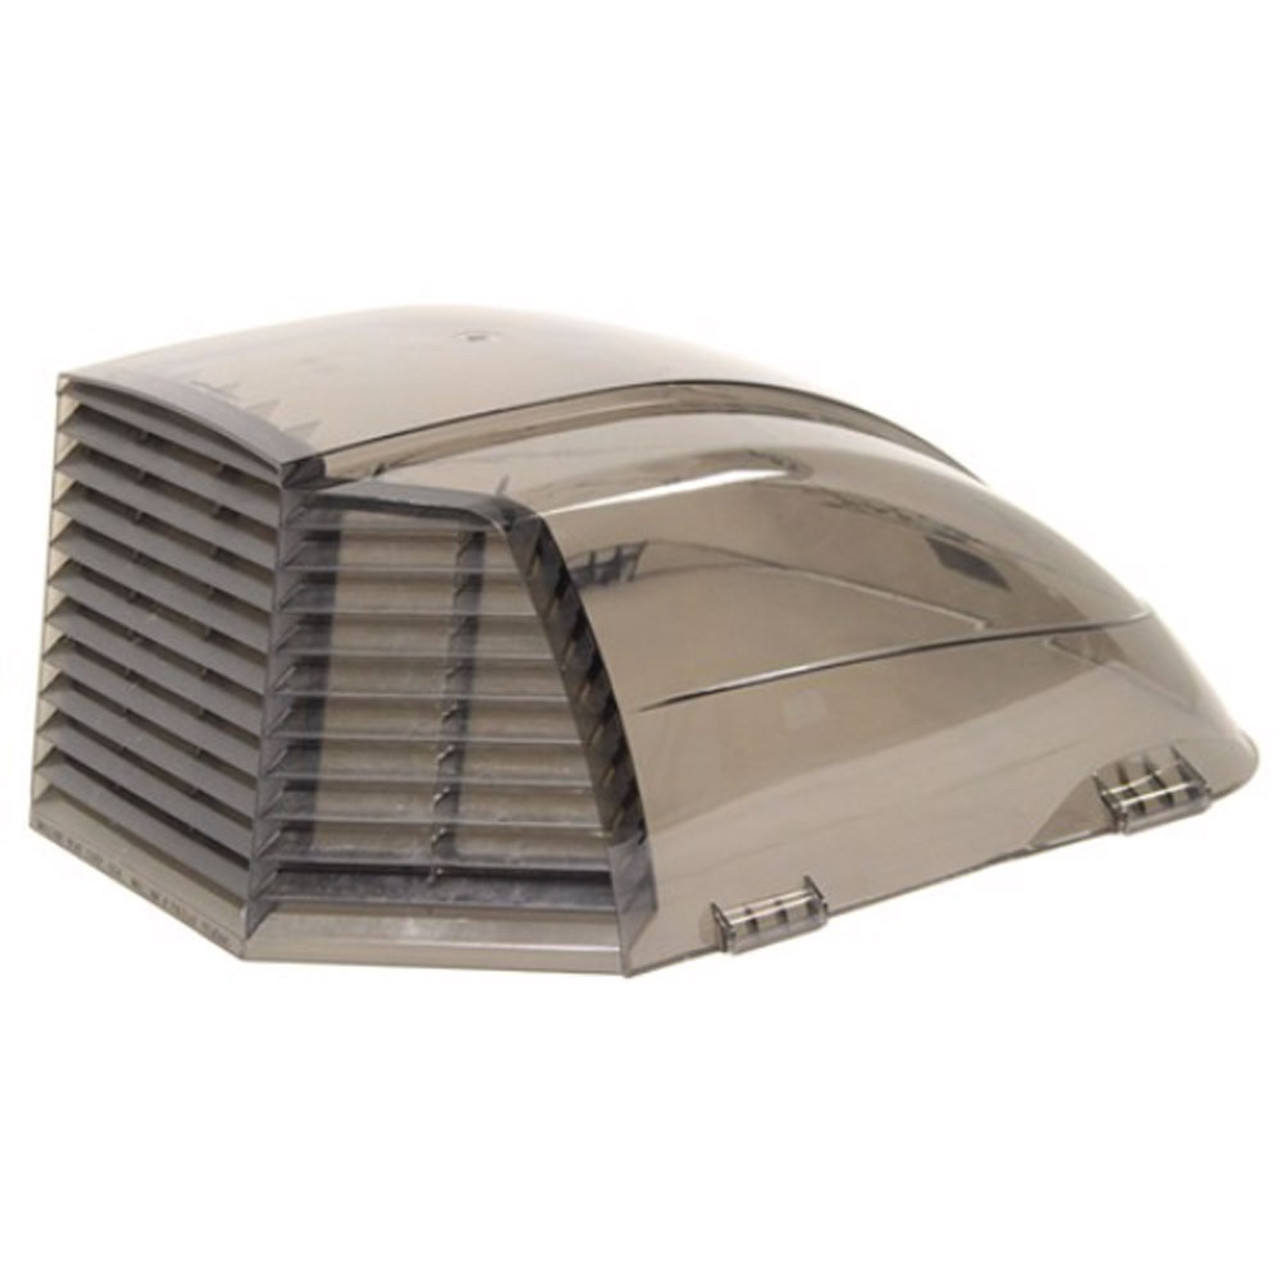 Roof Vent Covers >> Maxxair 00 933073 Maxxair Ii Rv Roof Vent Cover Smoke